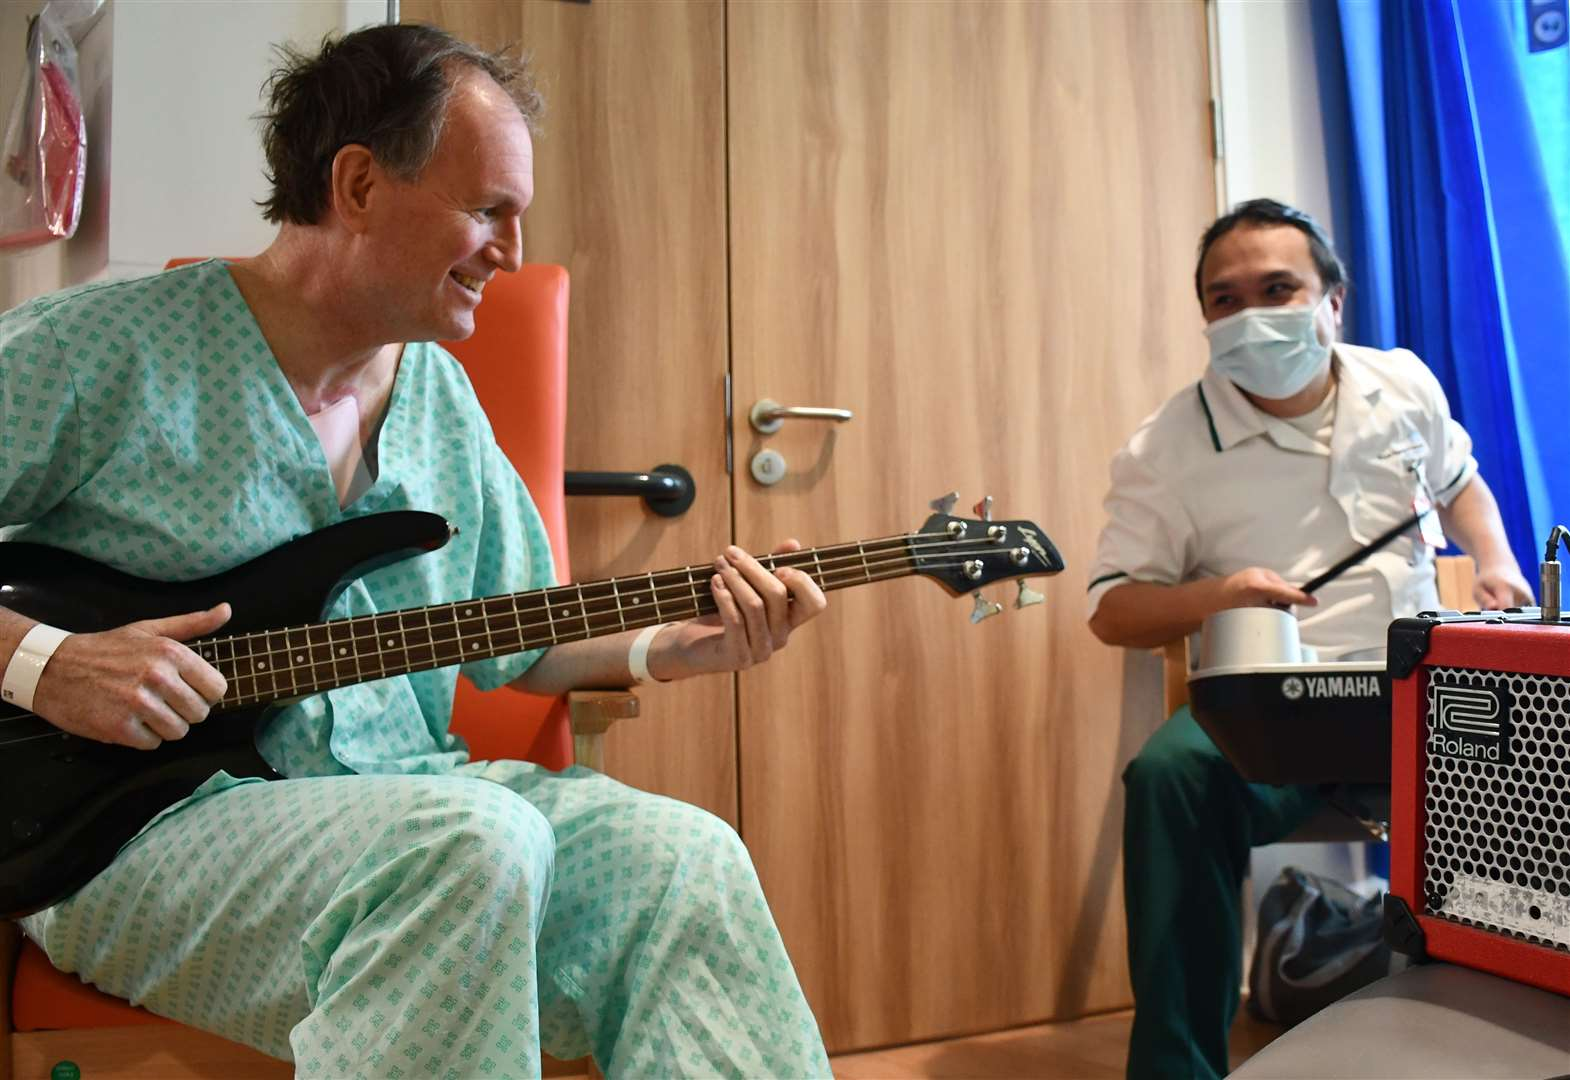 Music therapy helps Royal Papworth patient in his recovery